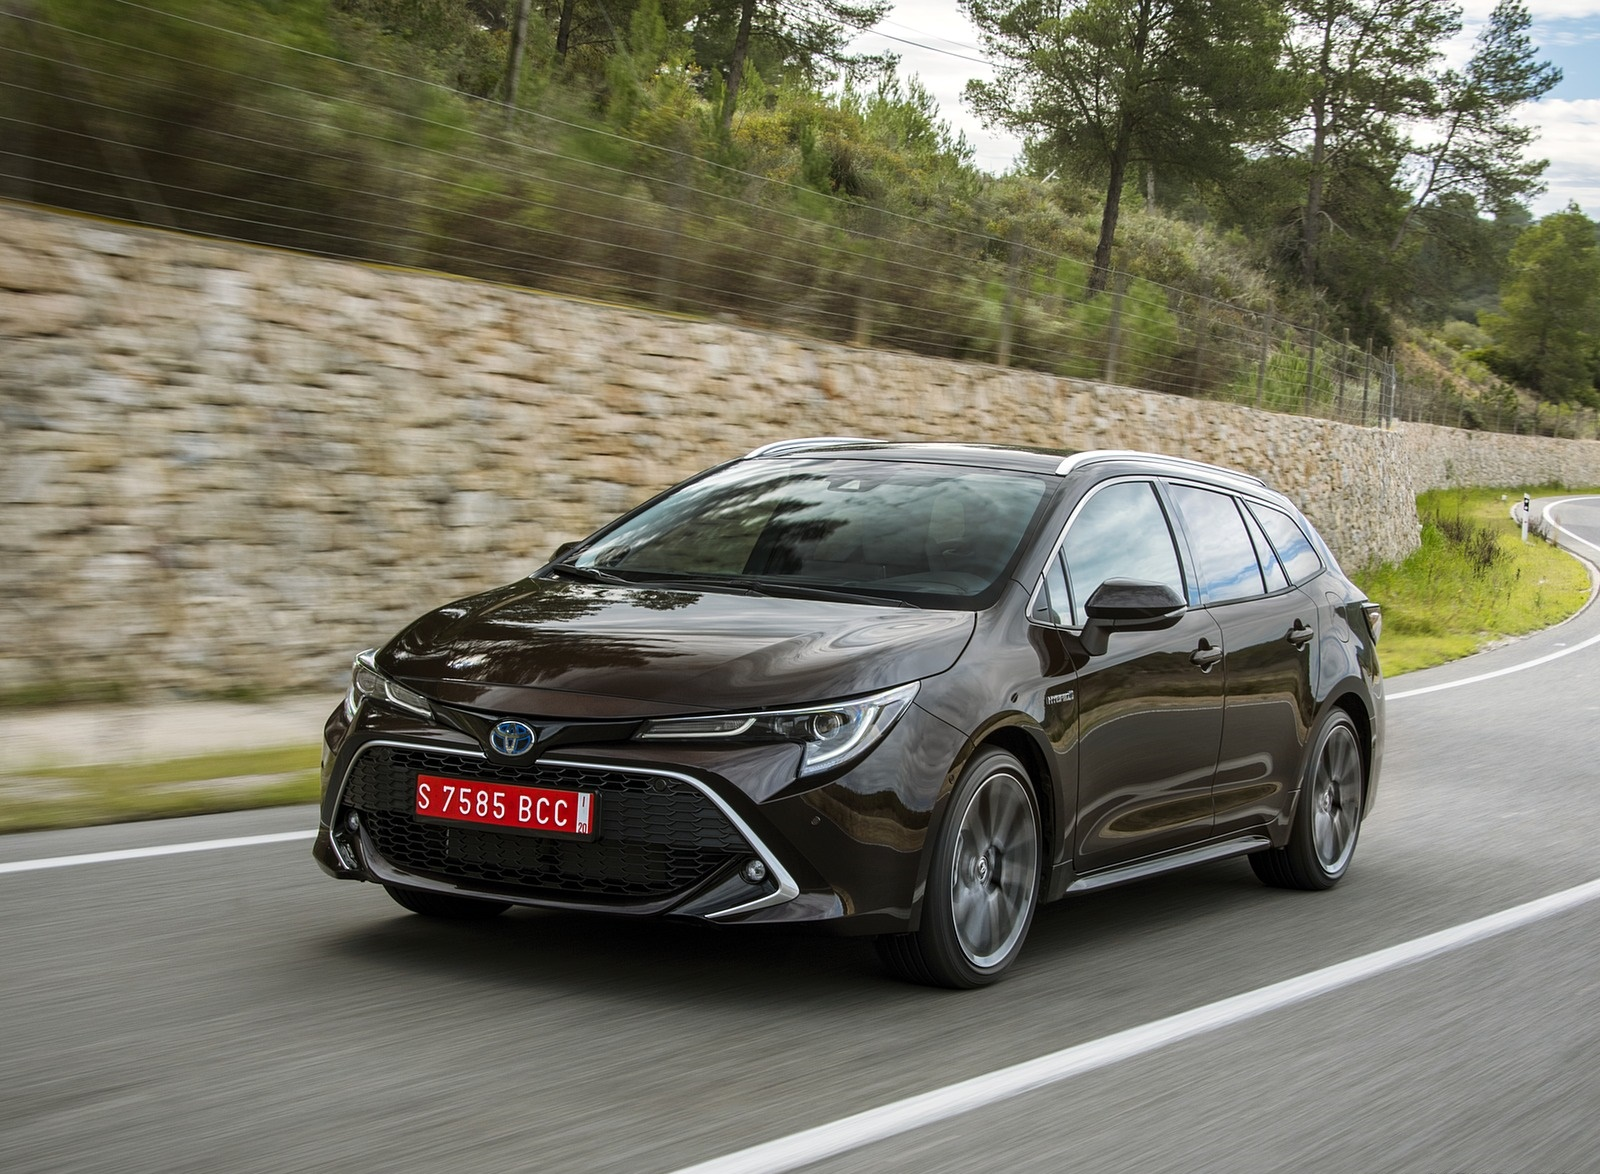 2019-Toyota-Corolla-Touring-Sports-2.0L-Brown-EU-Spec-Front-Three-Quarter-Wallpaper-21.jpg